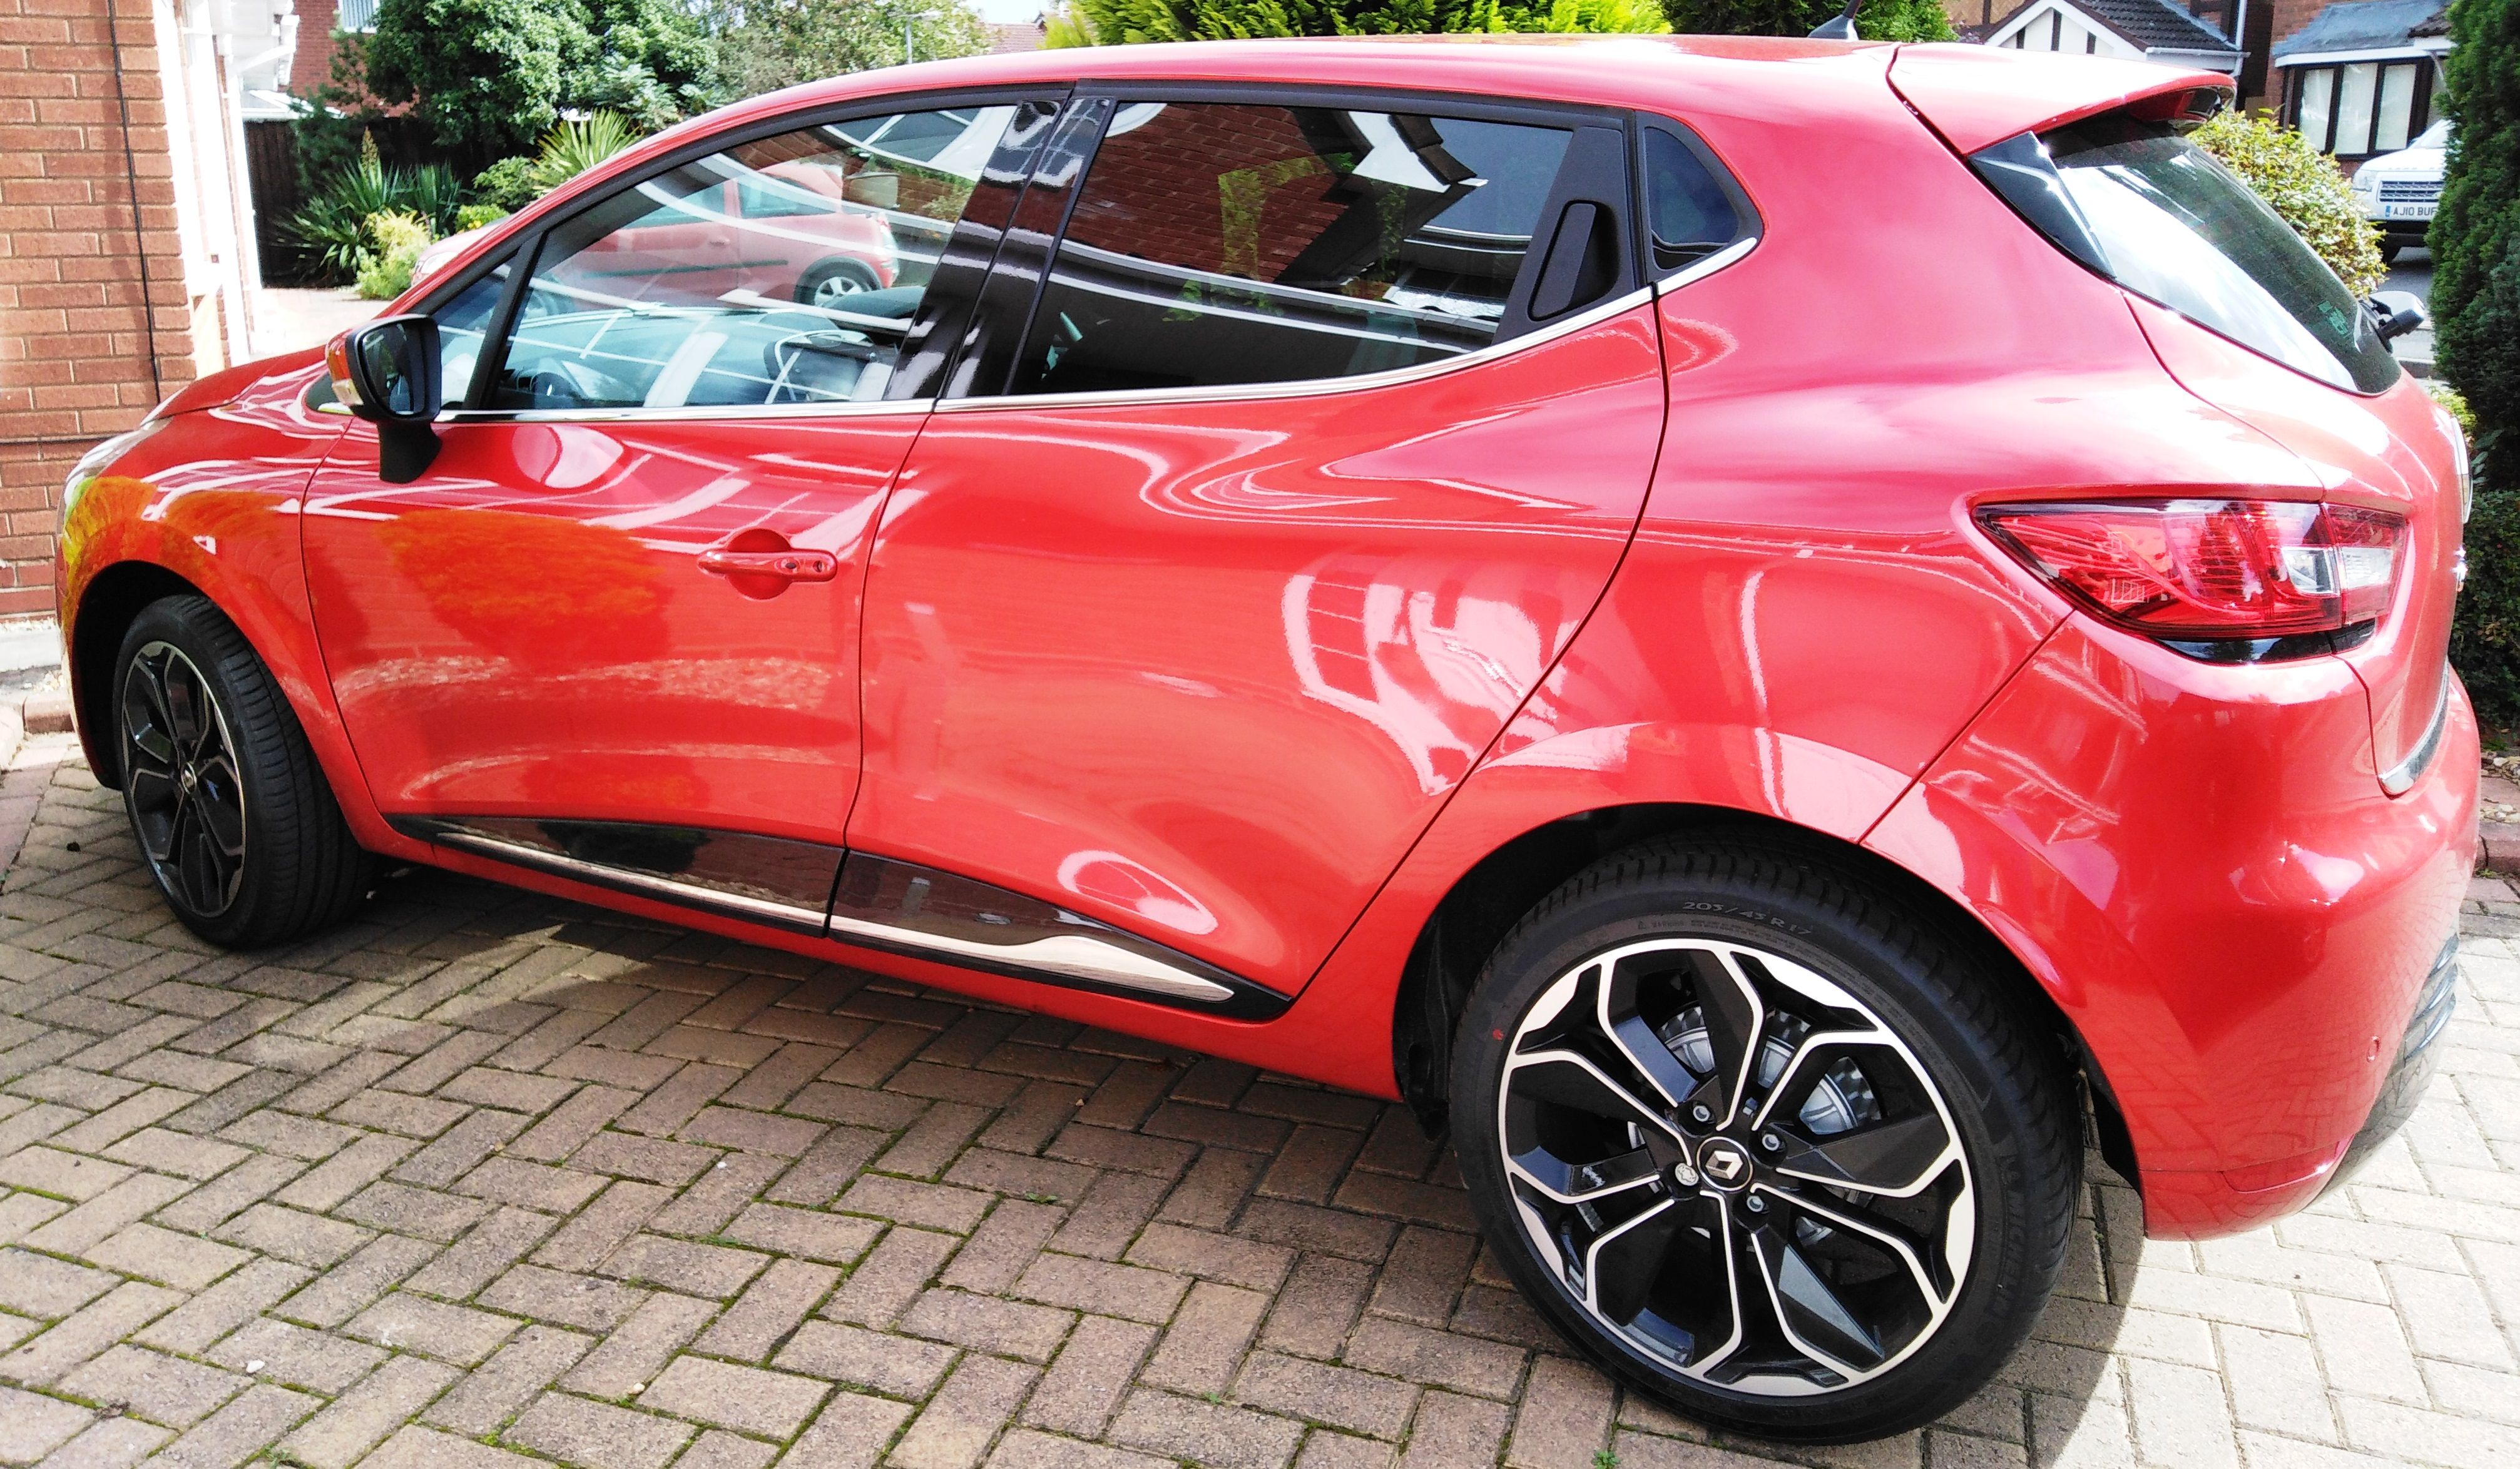 The Renault Clio Hatchback 0 9 Tce 90 Iconic 5 Door Petrol Manual